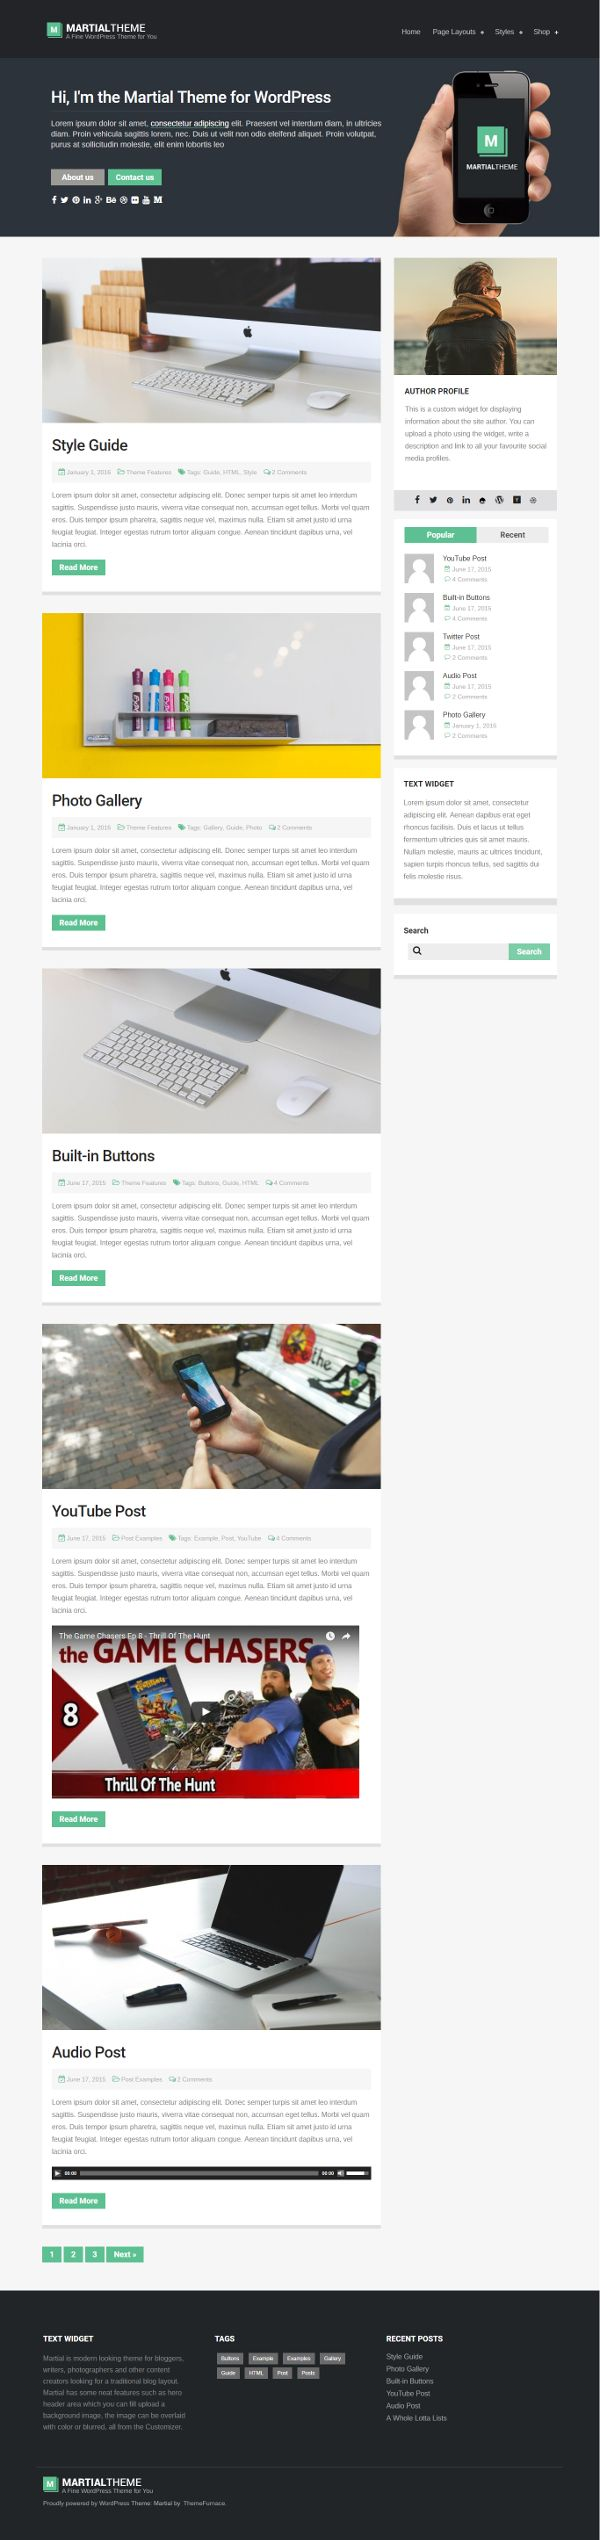 Martial - Theme WordPress Gratis Untuk Blog